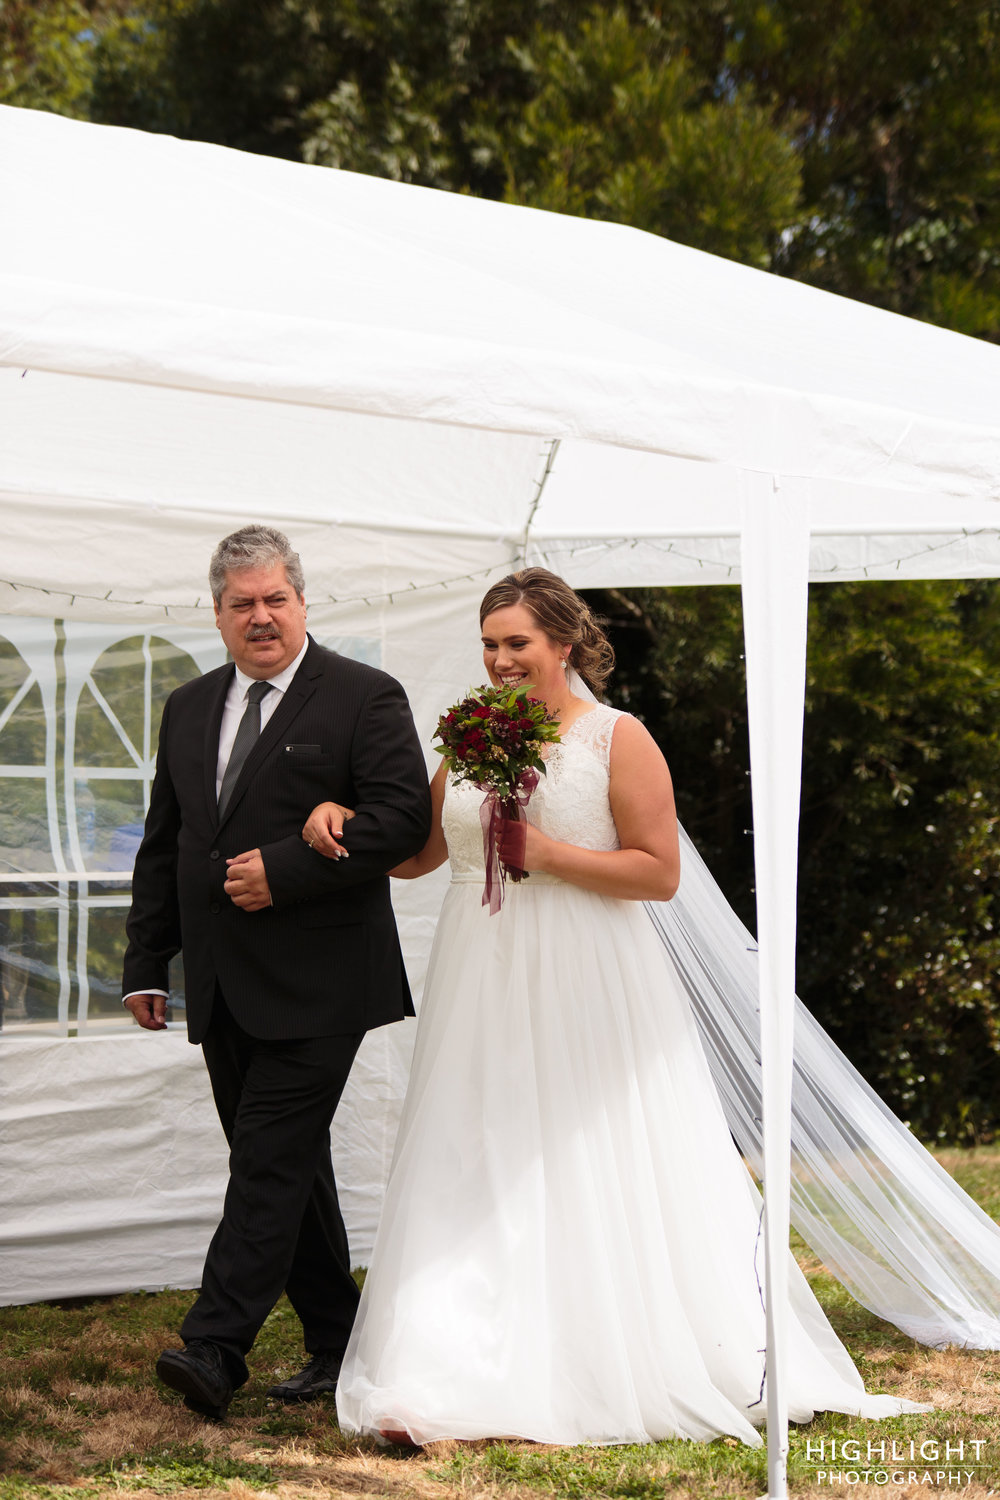 highlight-wedding-photography-new-zealand-palmerston-north-bv-59.jpg